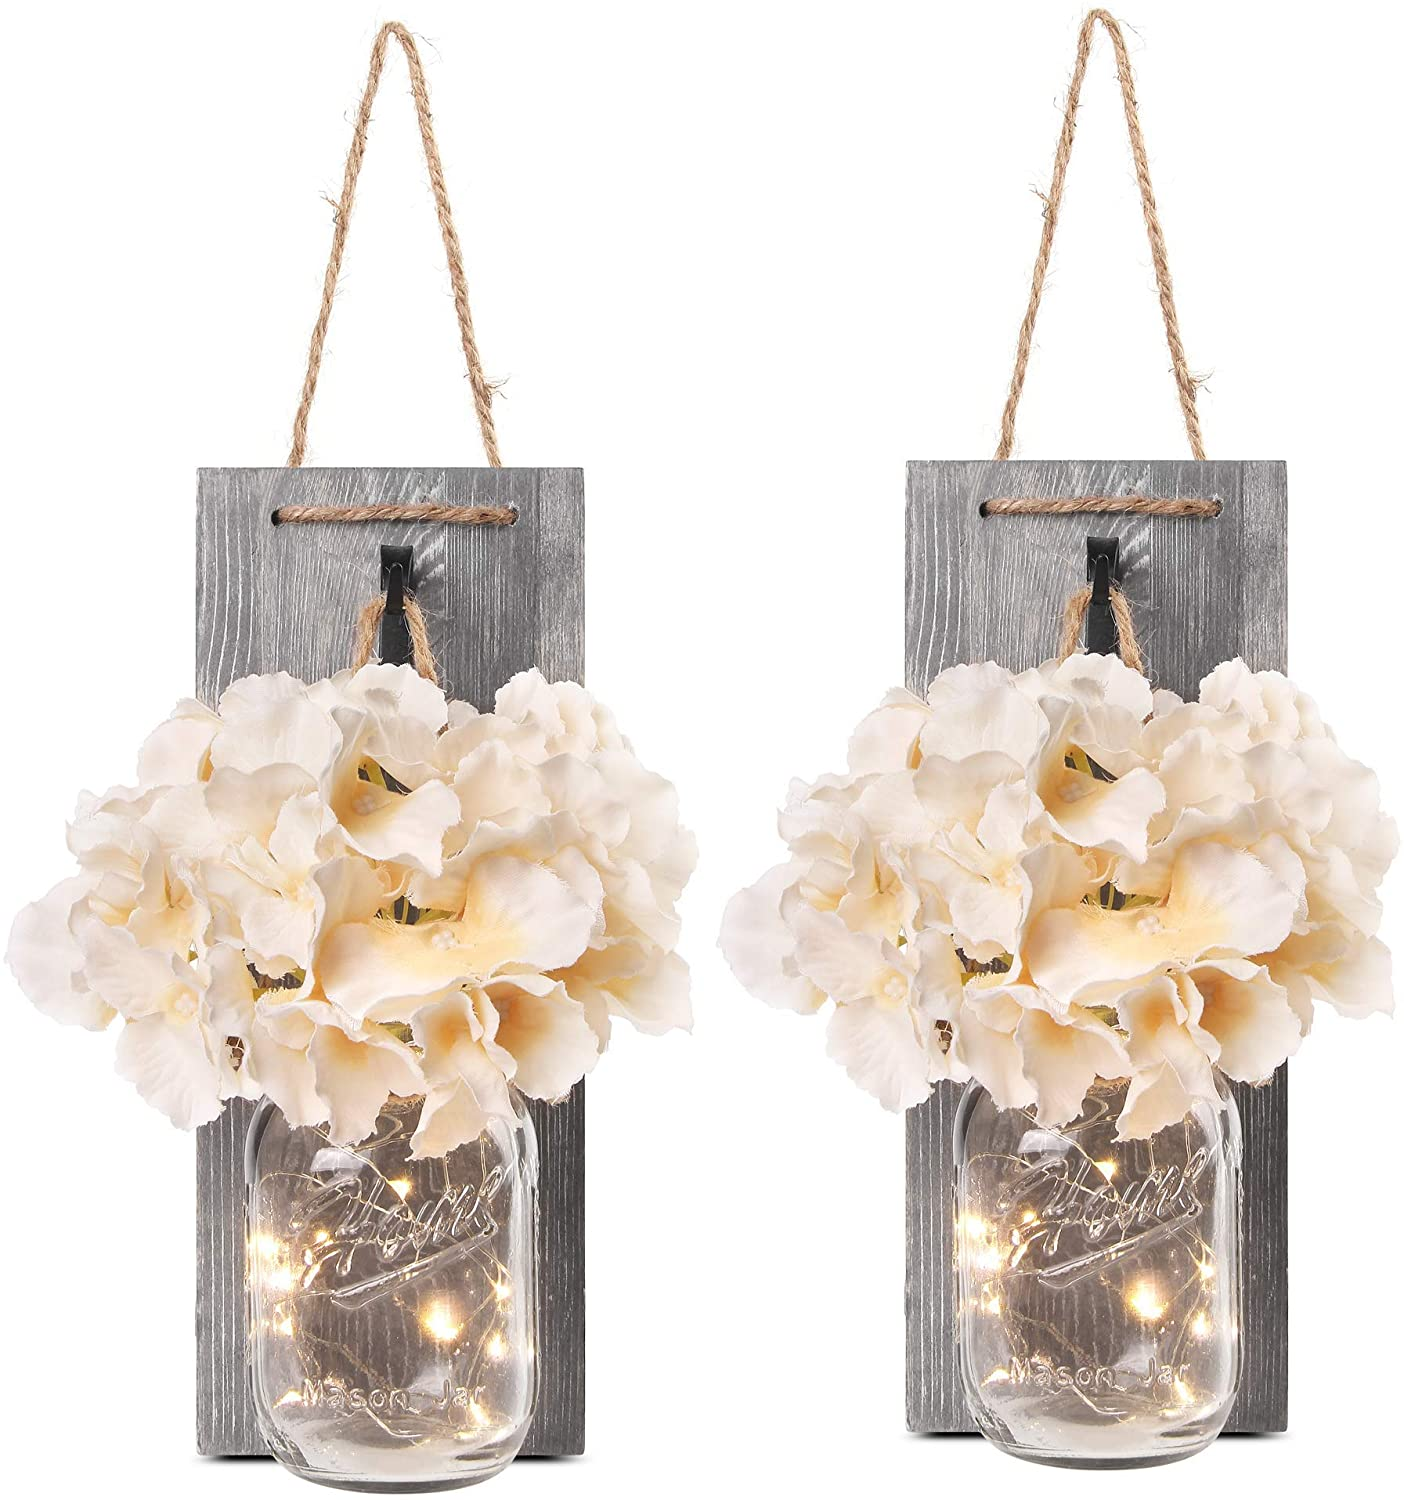 Jar Sconces LED Fairy Lights Vintage Iron Hooks Silk Hydrangea Flower and LED Strip Lights Design for Home Kitchen Decoration